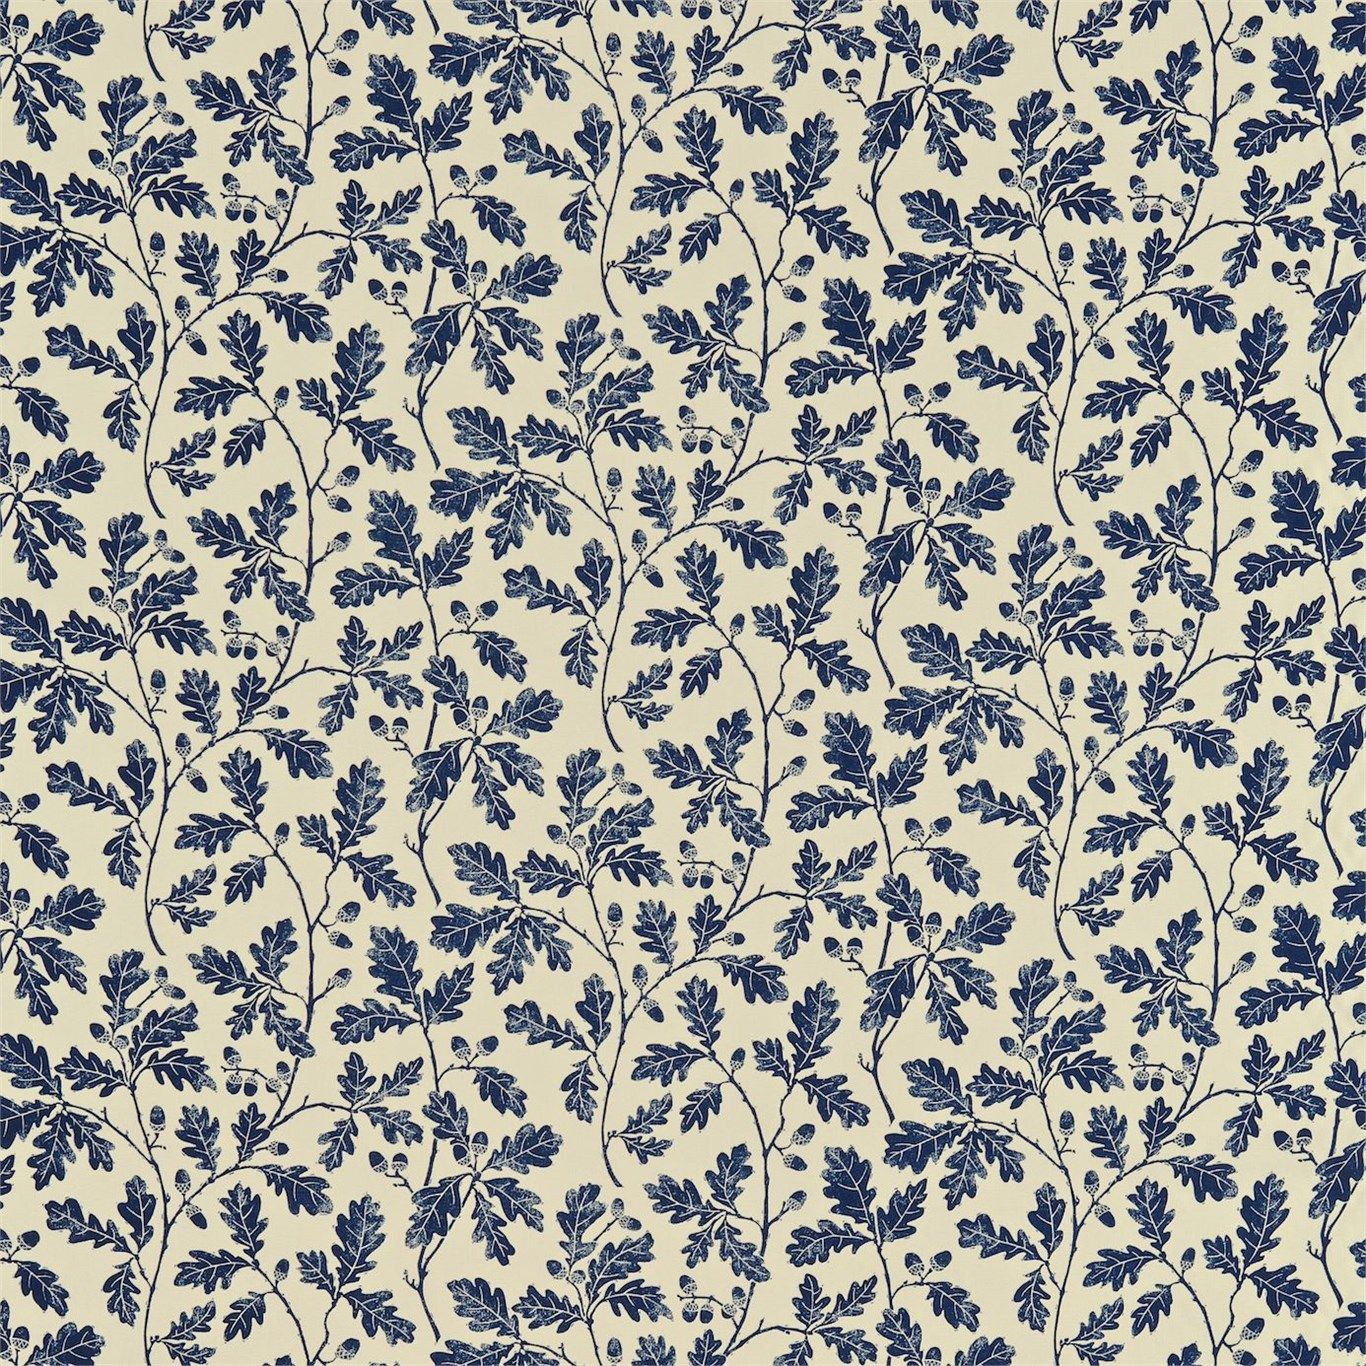 Download Wallpaper High Quality Pattern - e1801d6c8f3a44477ded2de547587602  Snapshot_223488.jpg